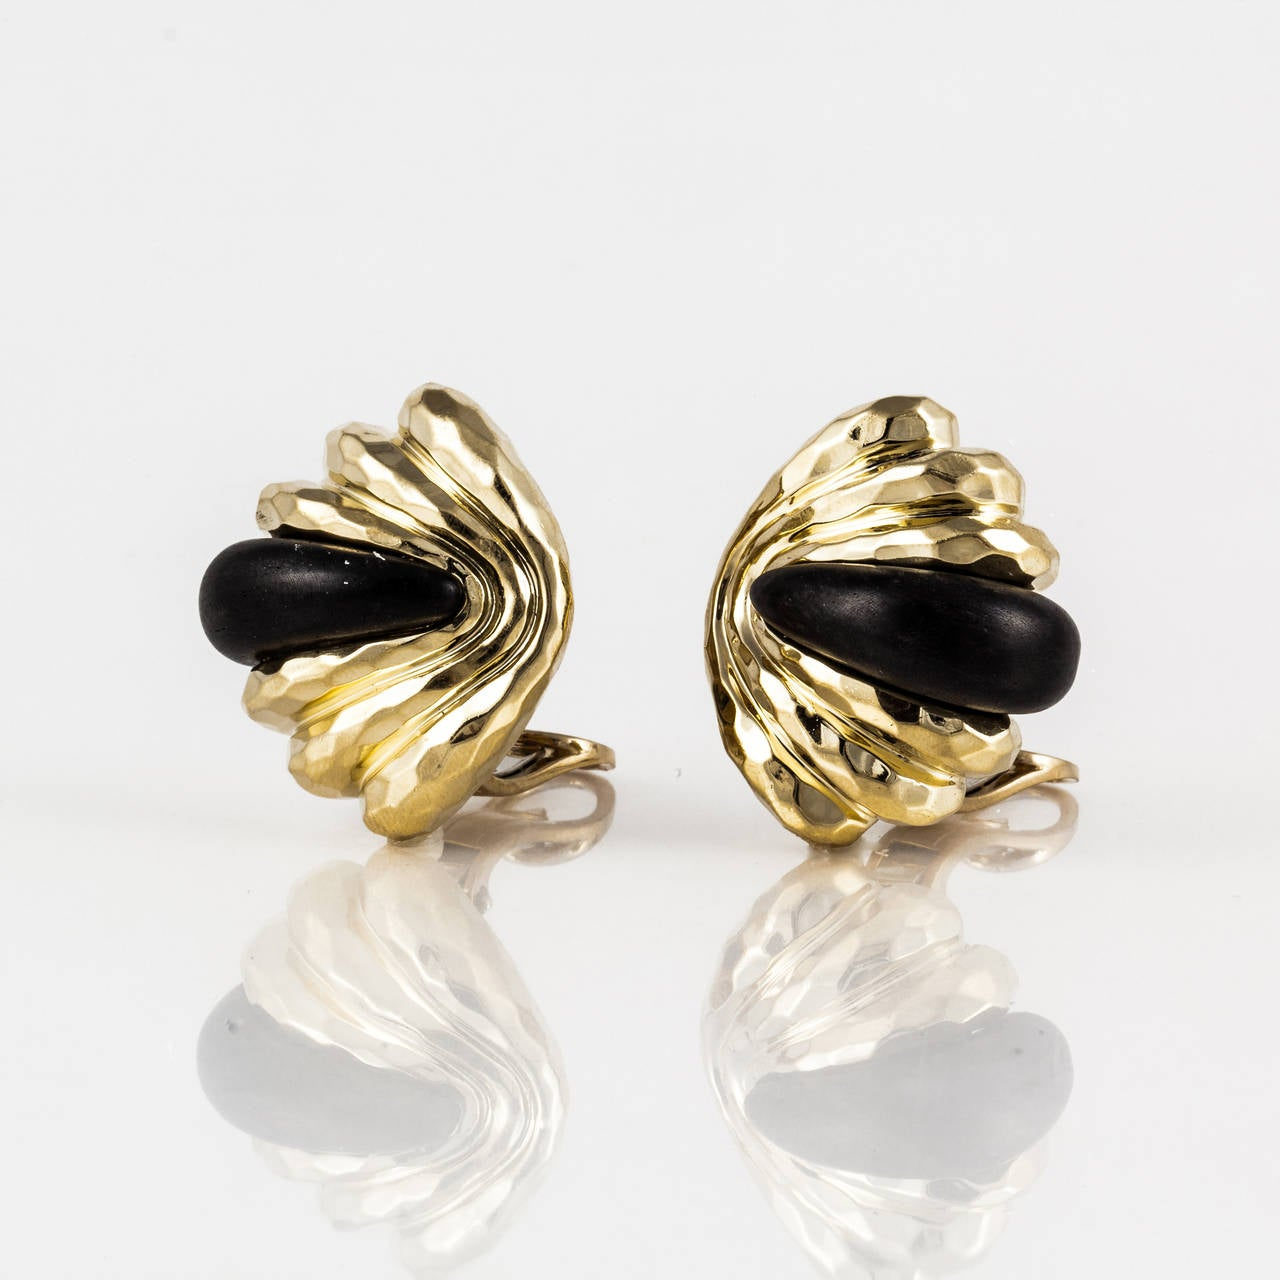 Unusual earrings by Henry Dunay.  They are hammered yellow gold with Ebony wood inserts.  Marked on the back